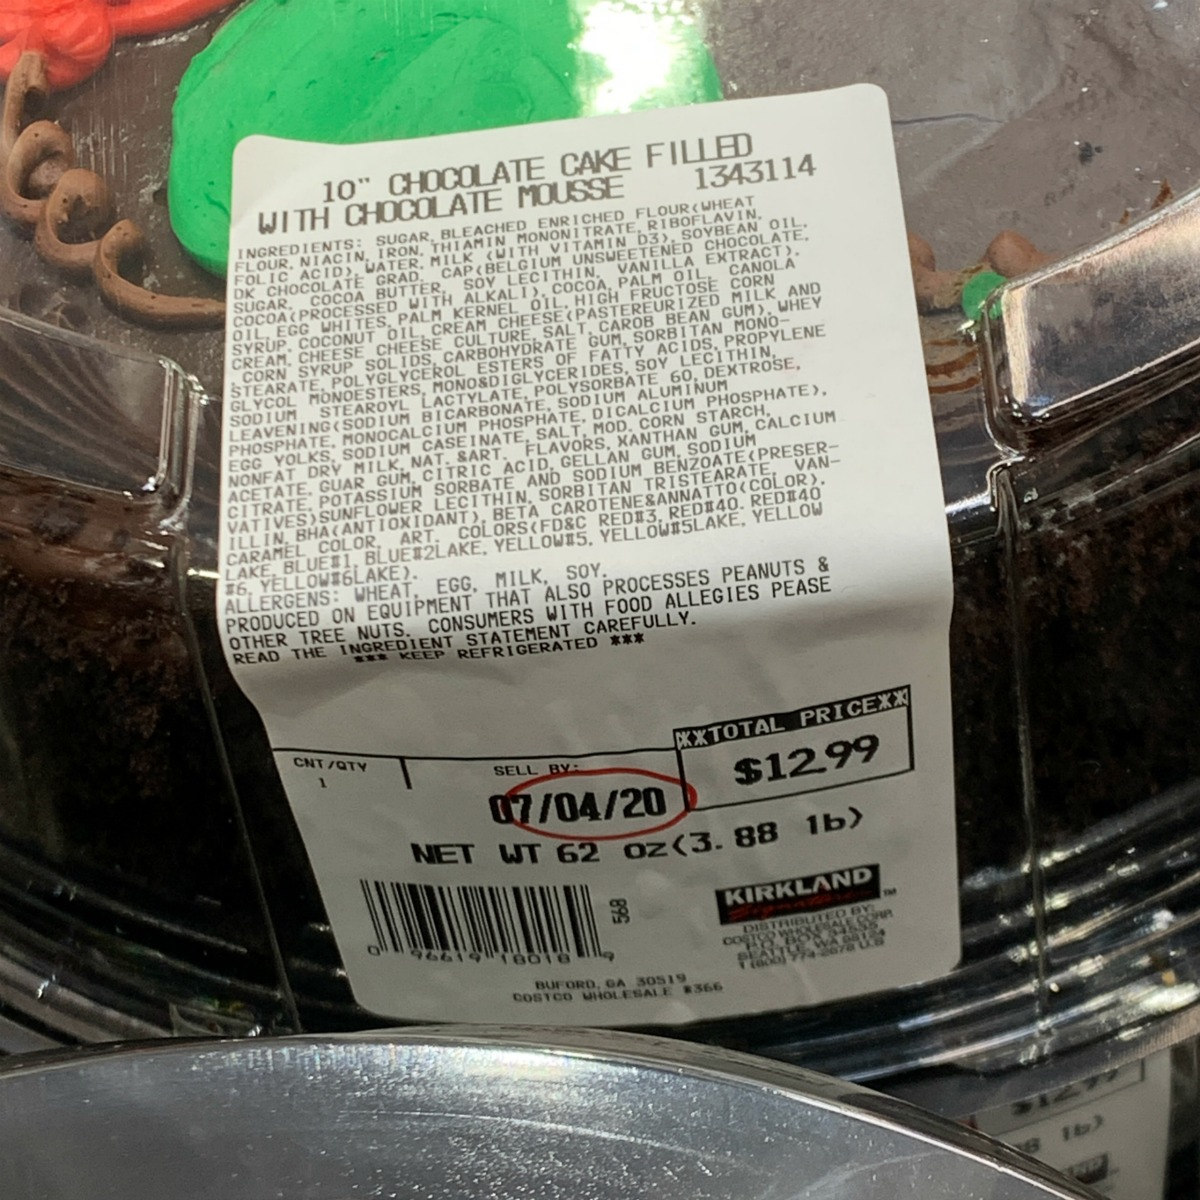 "10"" round chocolate cake from Costco ingredient label"